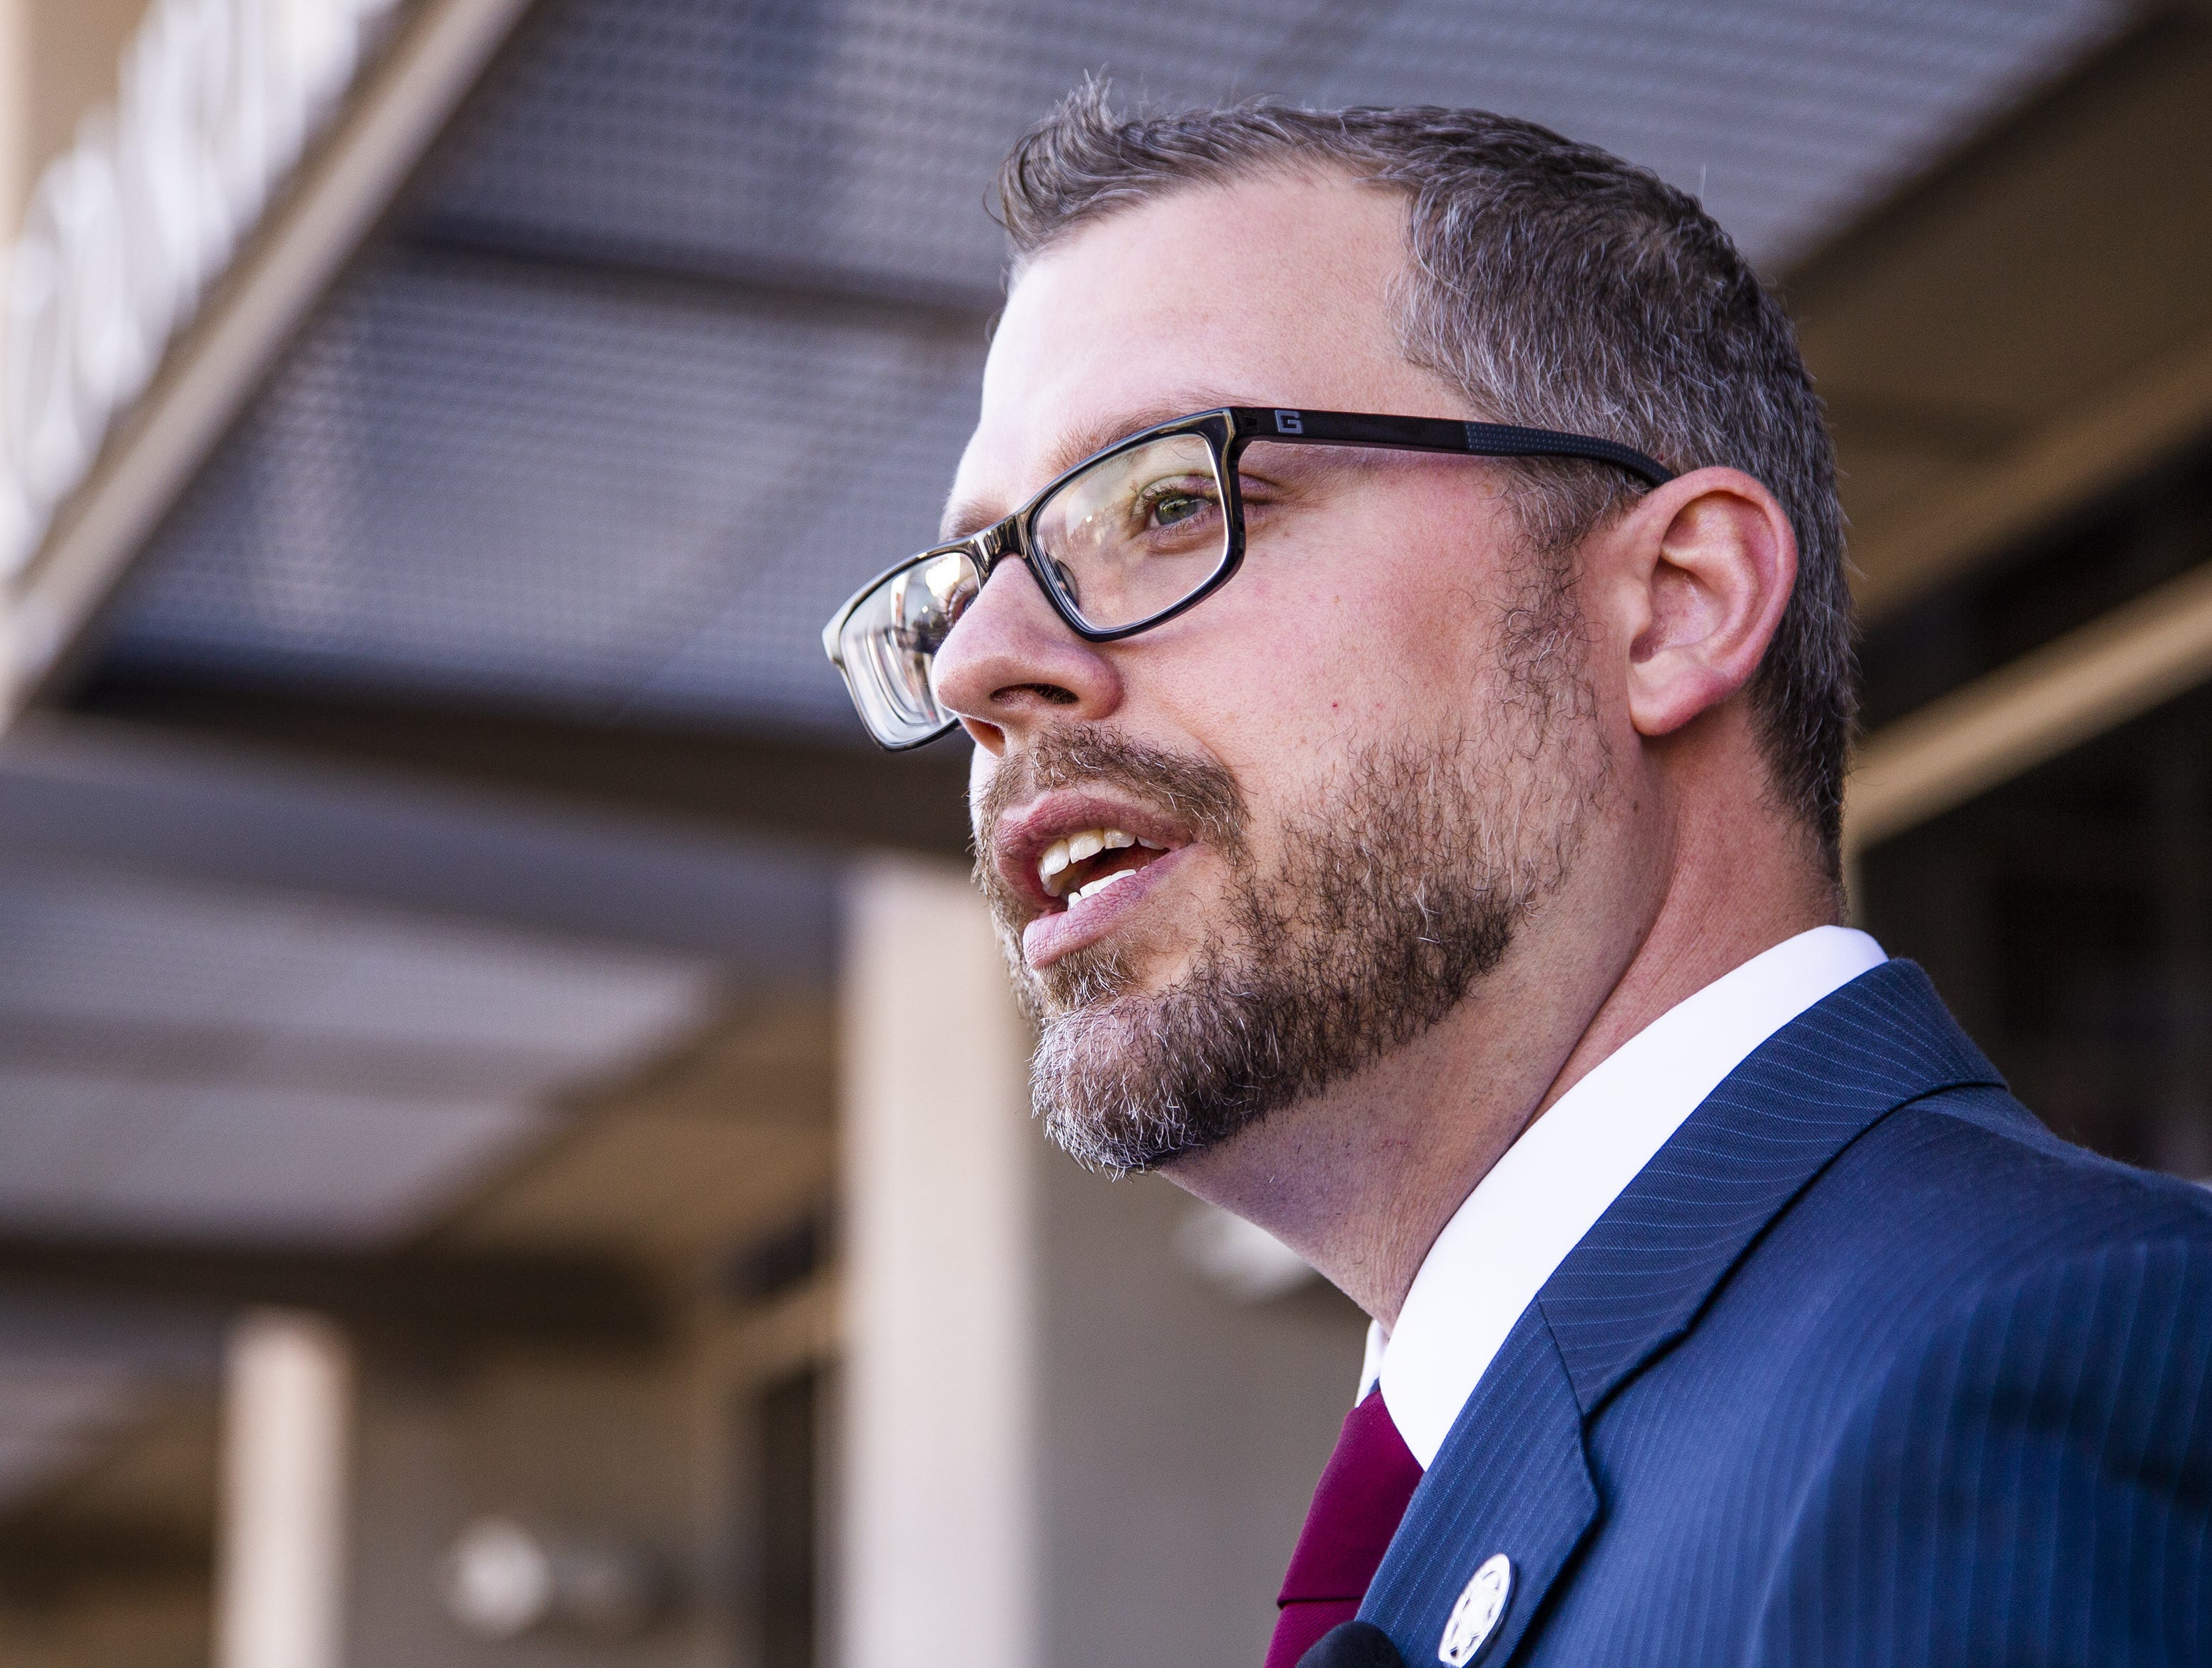 Pinal County Attorney Kent Volkmer speaks to the media outside the Pinal County Superior Court in Florence on March 29, 2019.